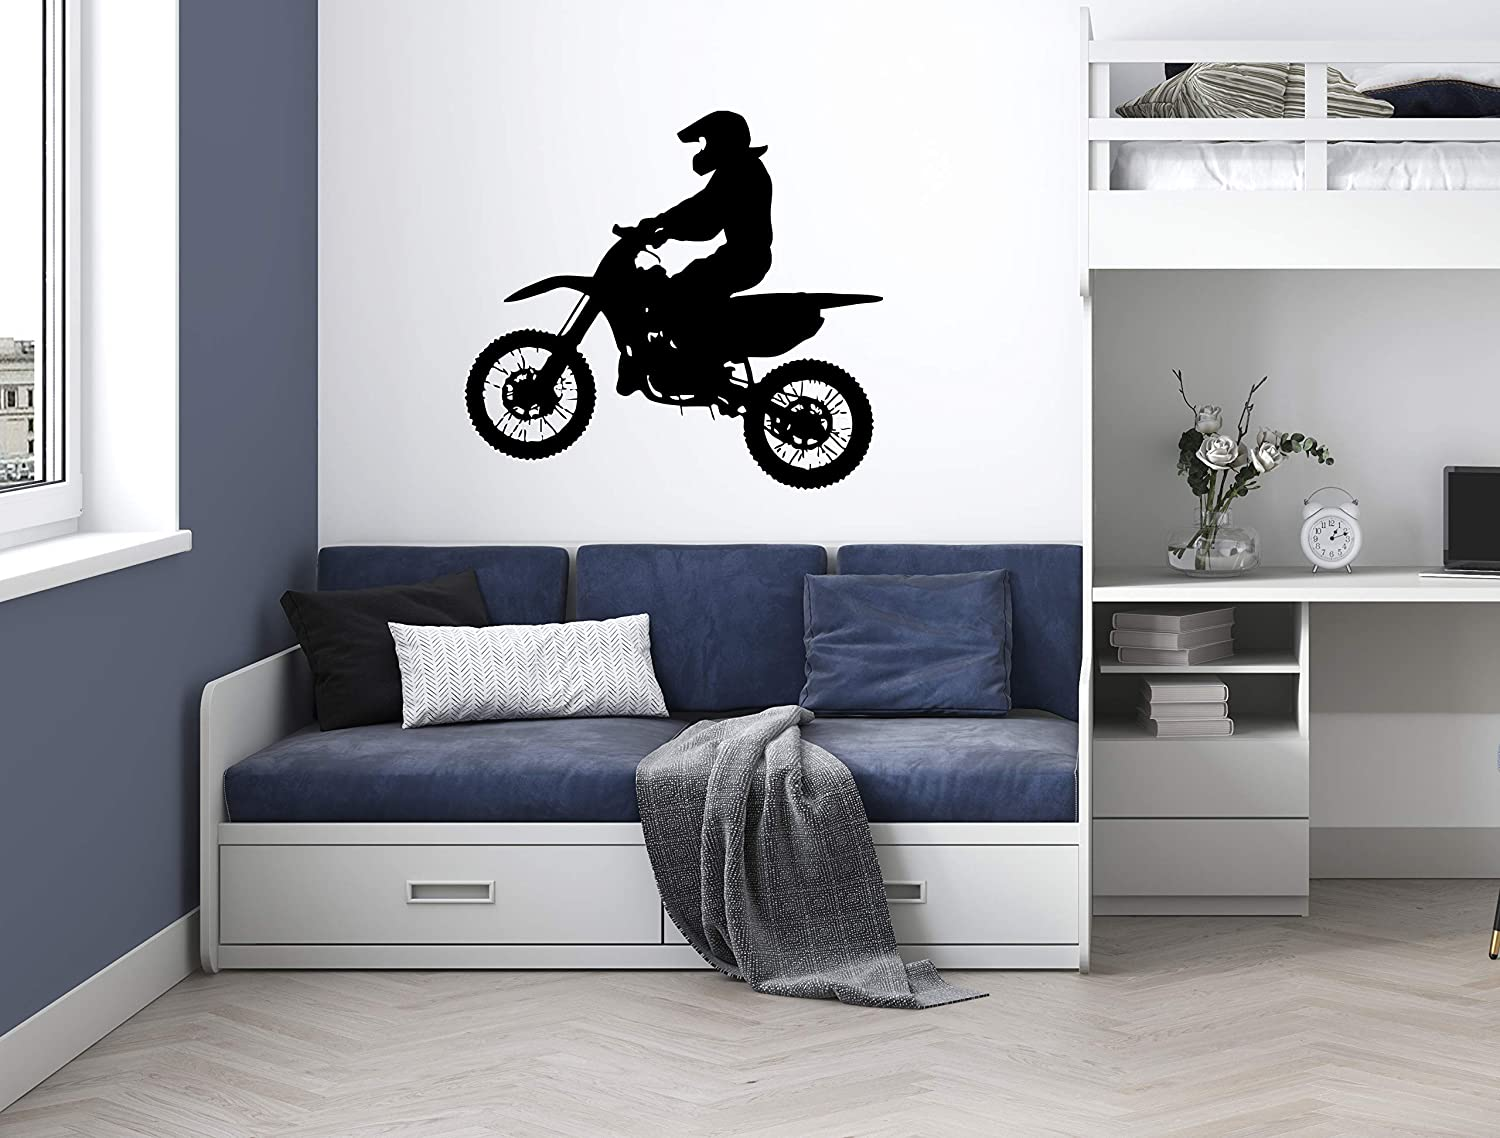 Moto wall sticker 3d For Kids Room Bed Extreme sport decal